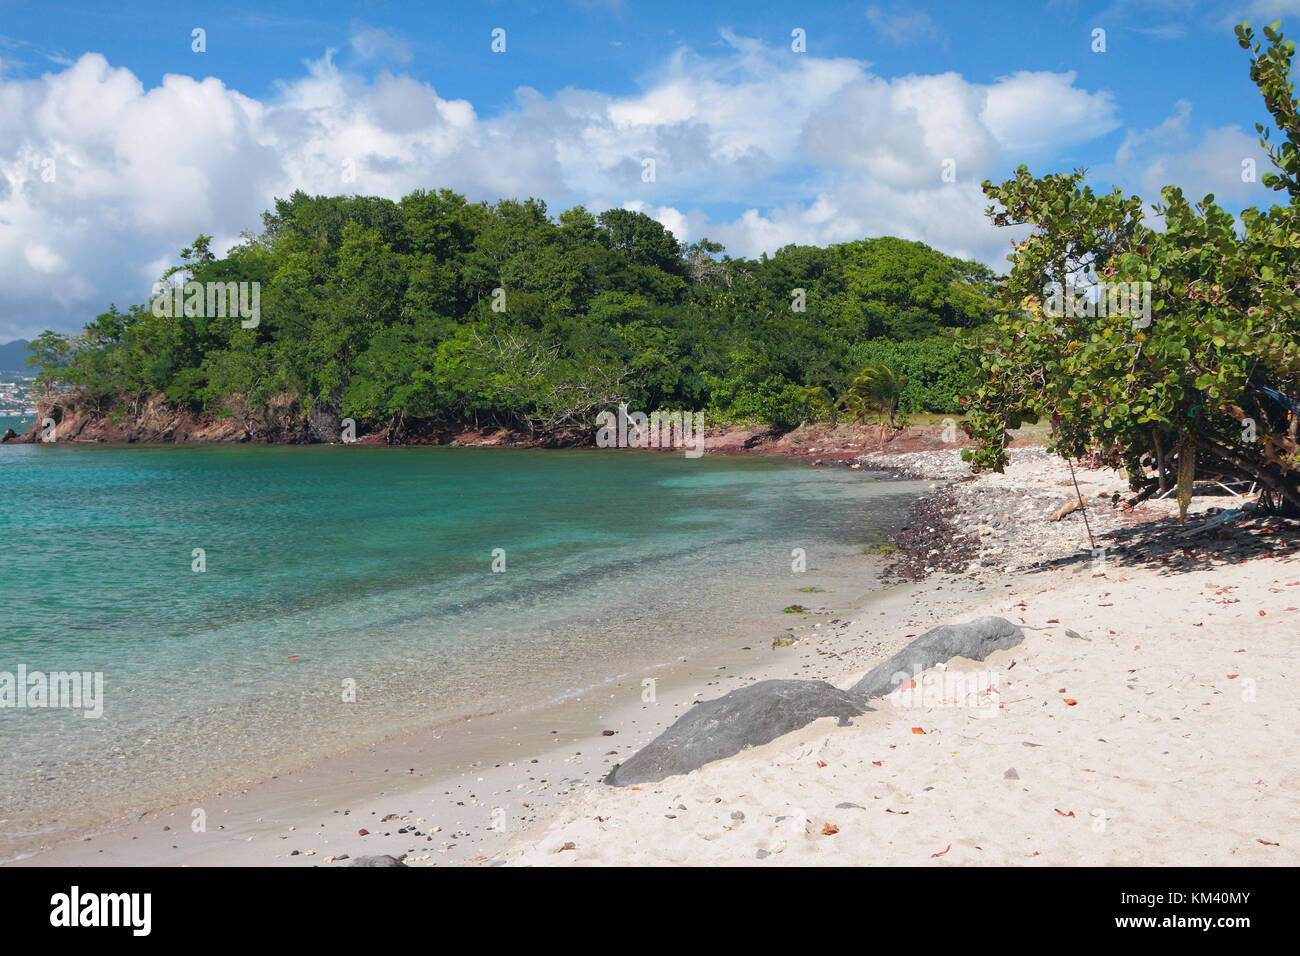 Sandy beach on tropical island. Pointe-du-Bout, Martinique - Stock Image